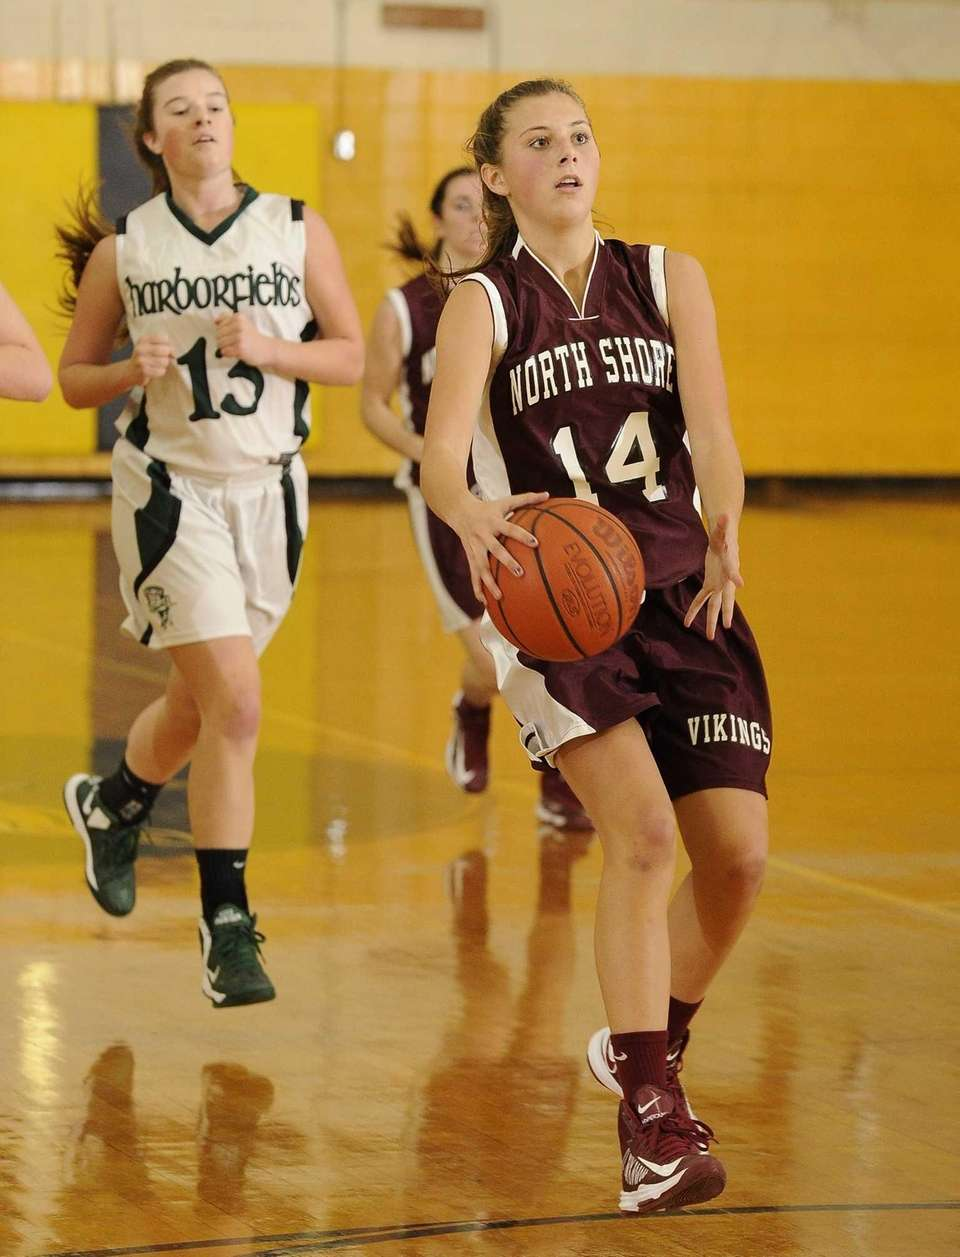 North Shore's Alexandra Cantwell pulls up to shoot